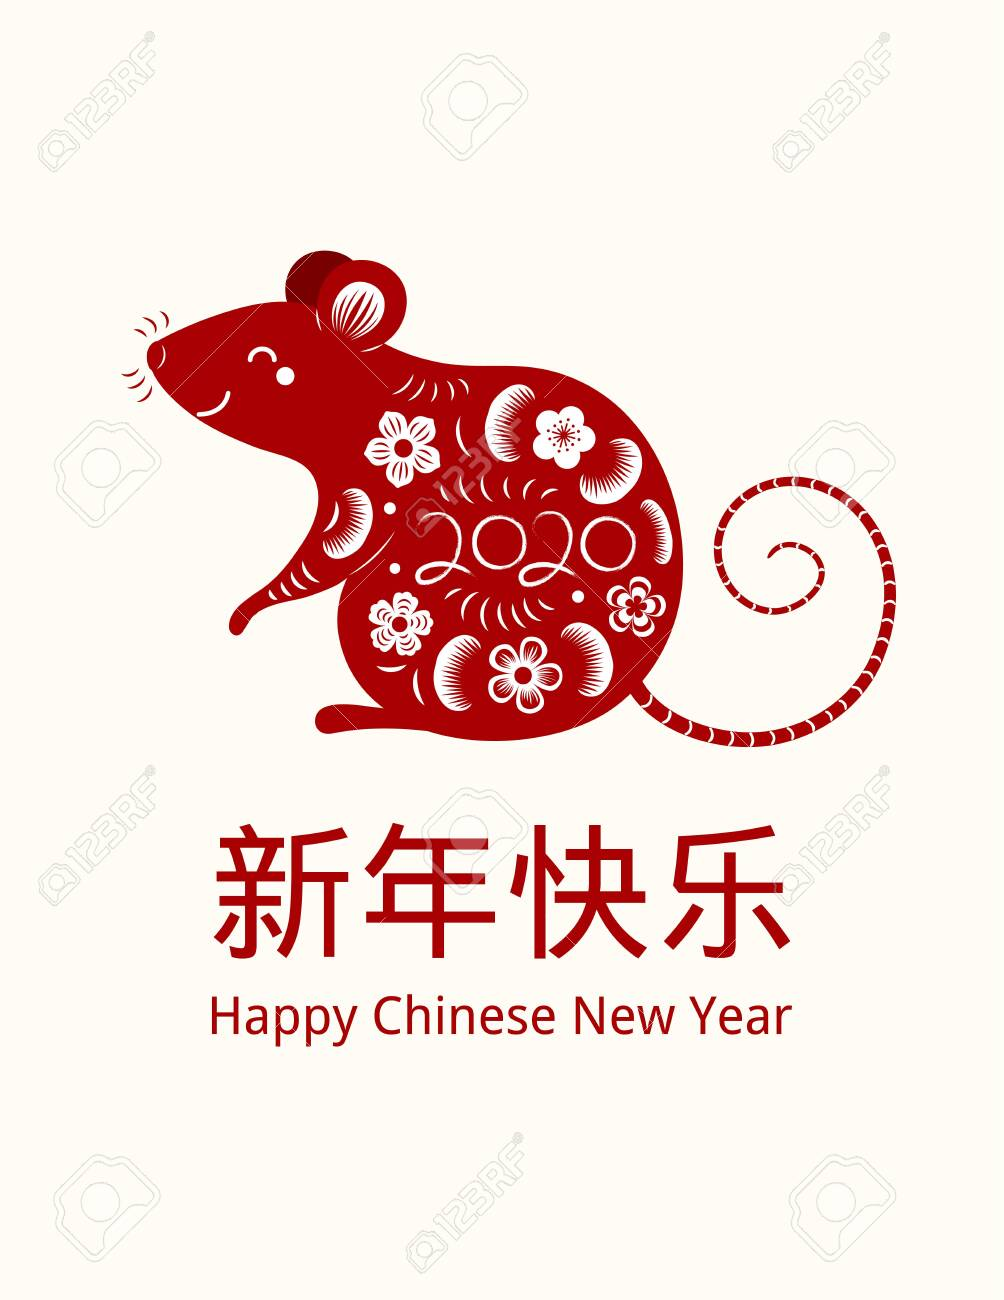 2020 New Year greeting card with red rat silhouette, Chinese text Happy New Year. Vector illustration. Isolated objects on white. Papercut flat style design. Concept for holiday banner, decor element. - 124517751